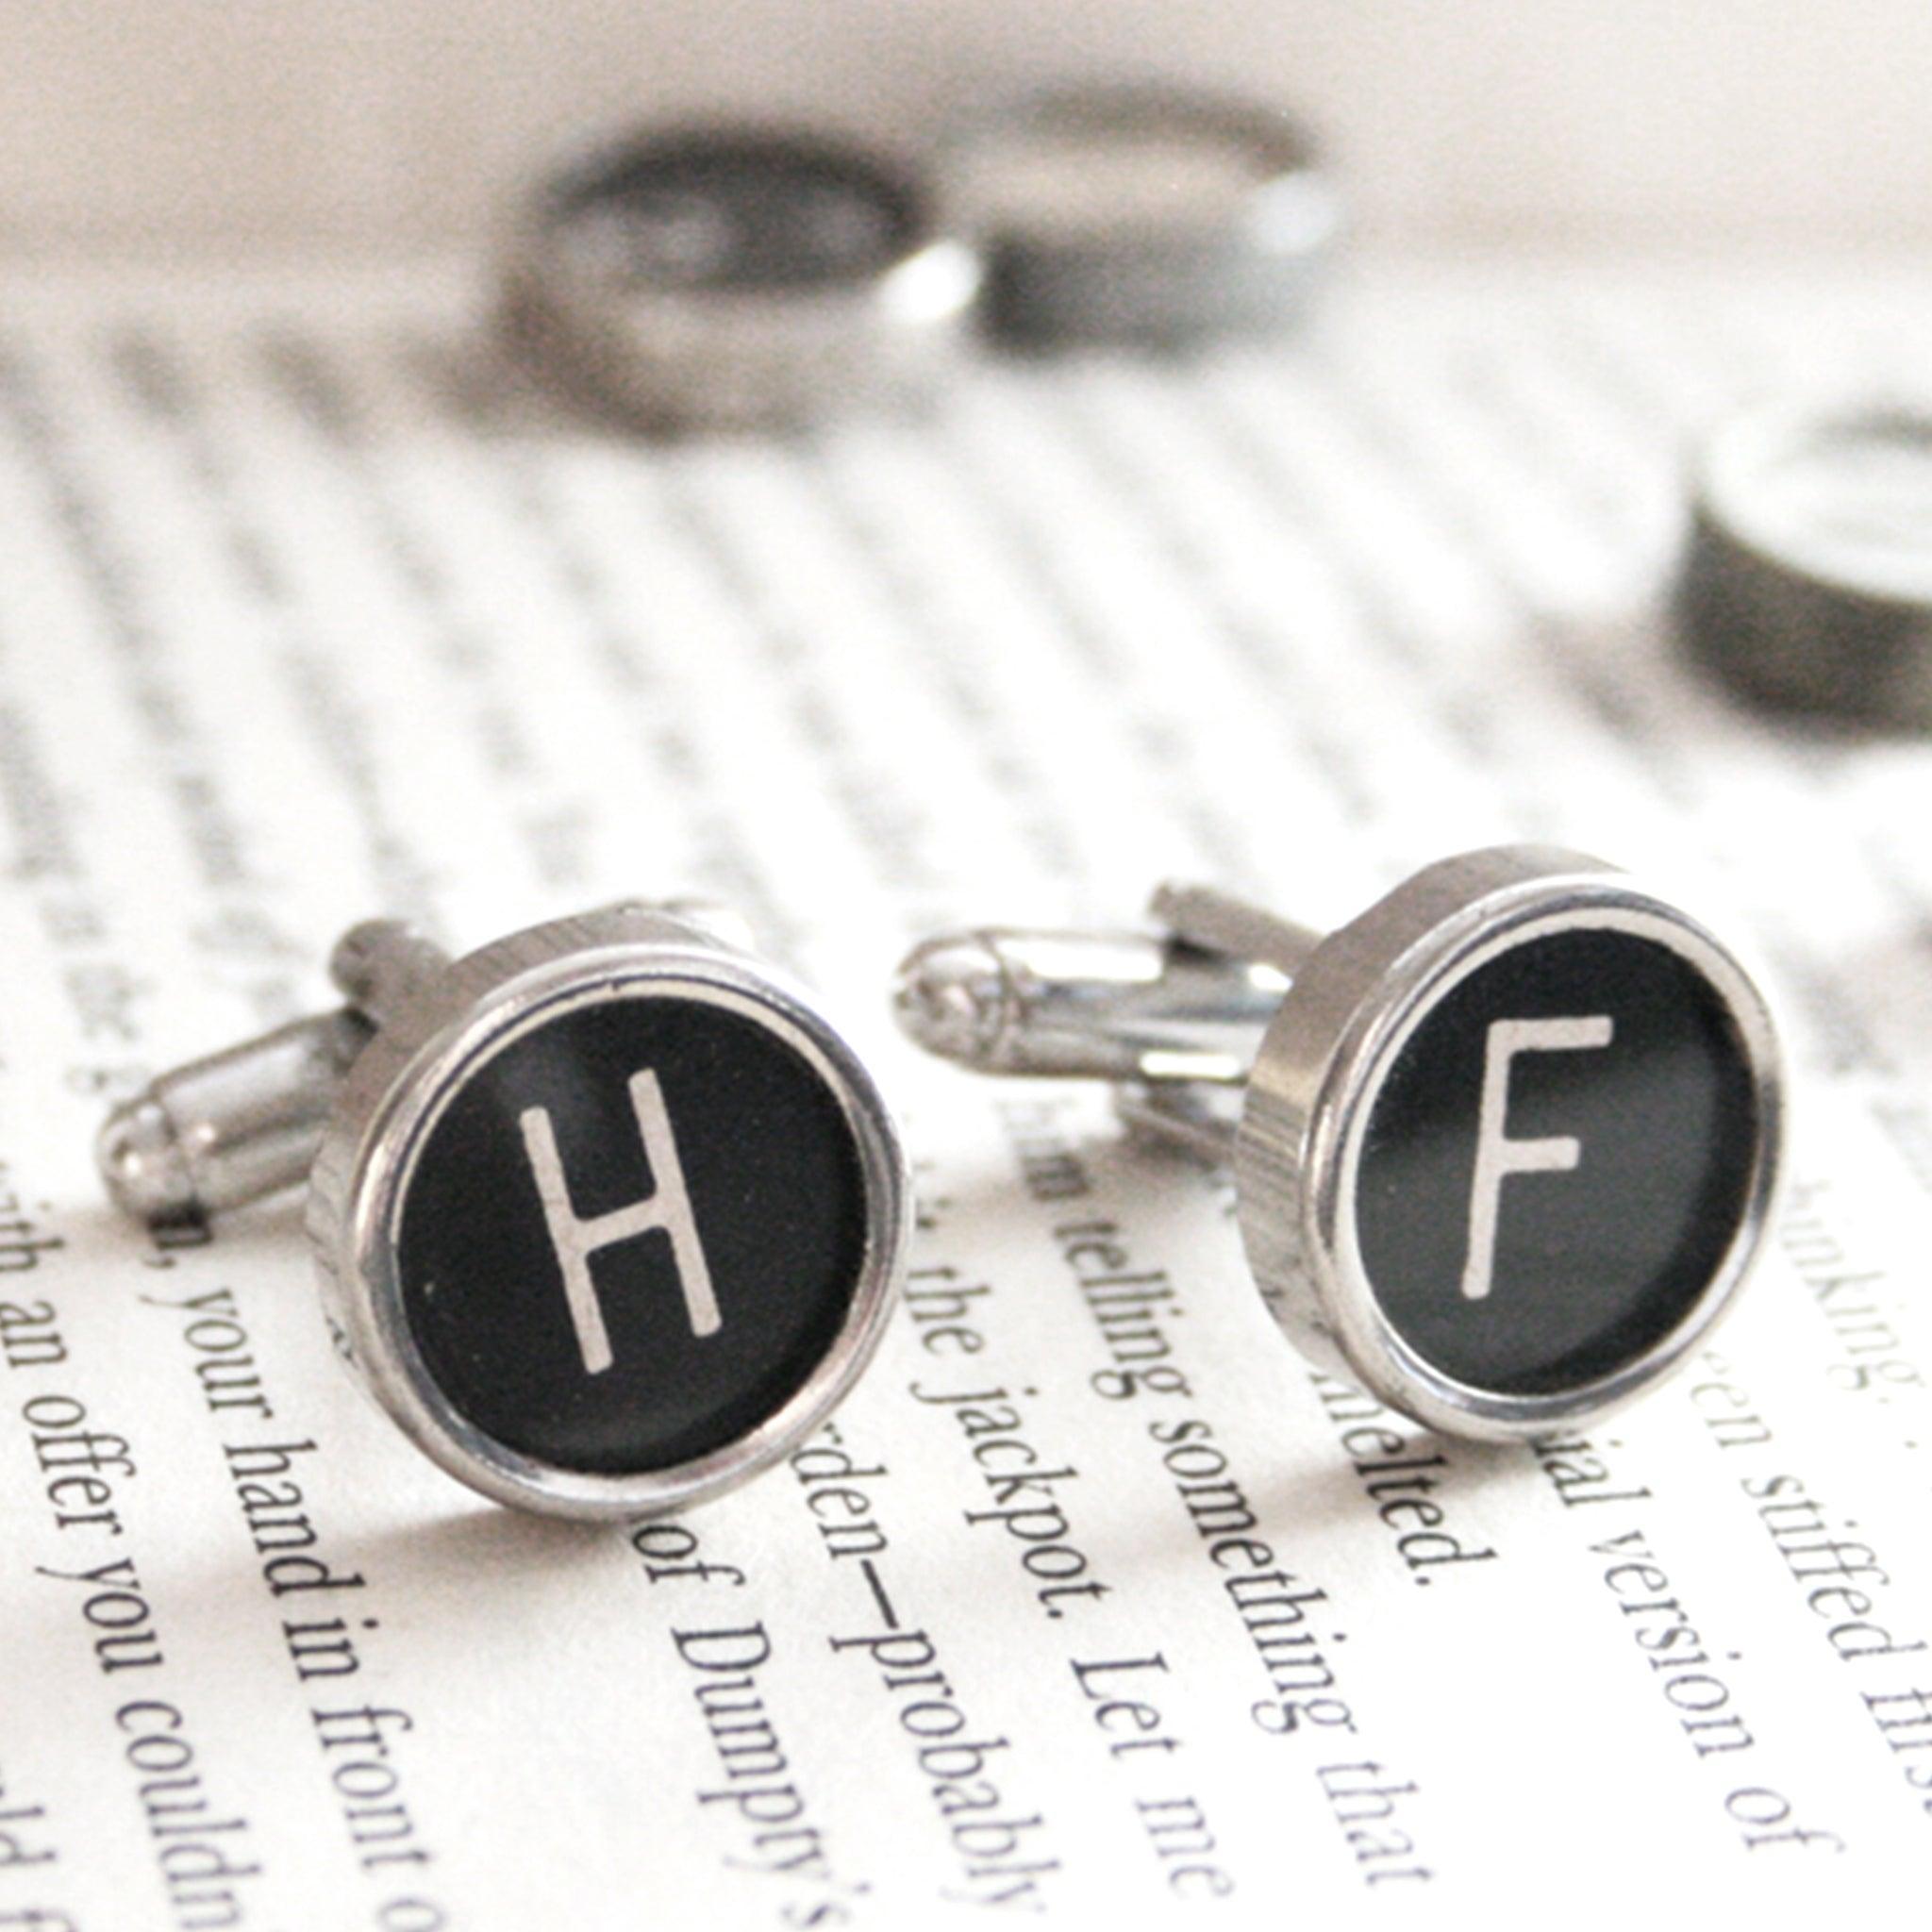 Black Personalised cufflinks with initials made of real typewriter keys H and F